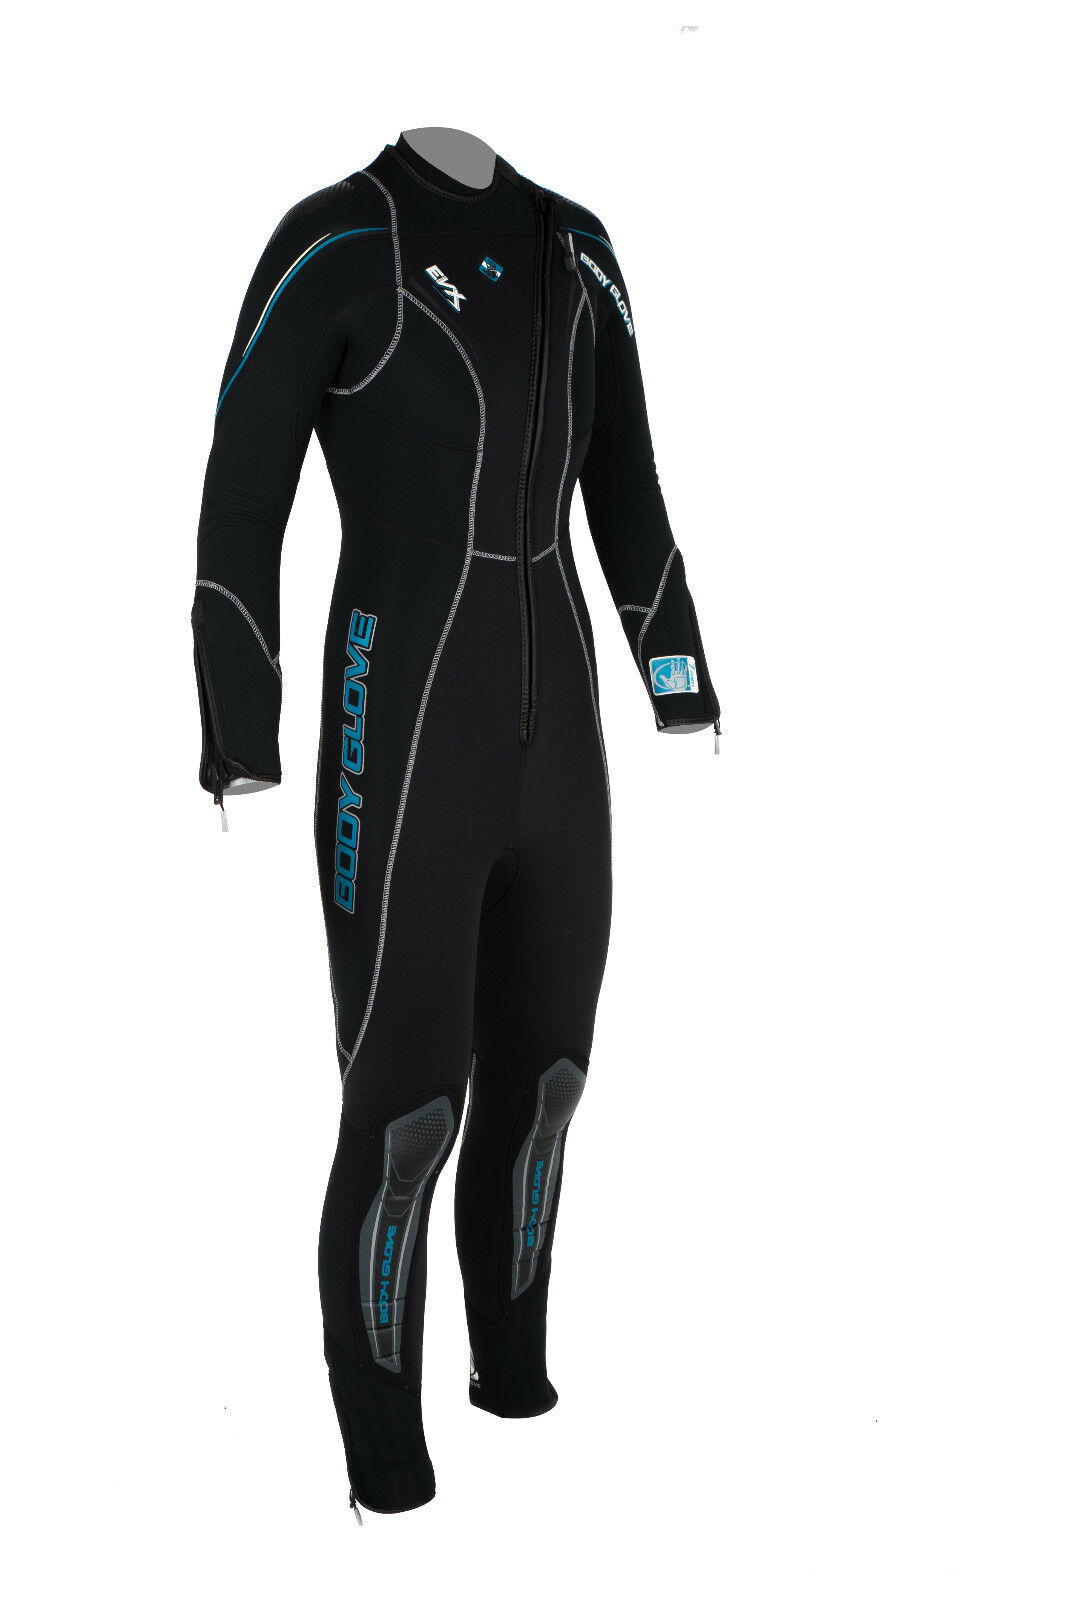 BODY BODY BODY GLOVE EVX Front Zip 7mm Damen Full Wetsuit Neoprenanzug Surf Tauchanzug b7e15b